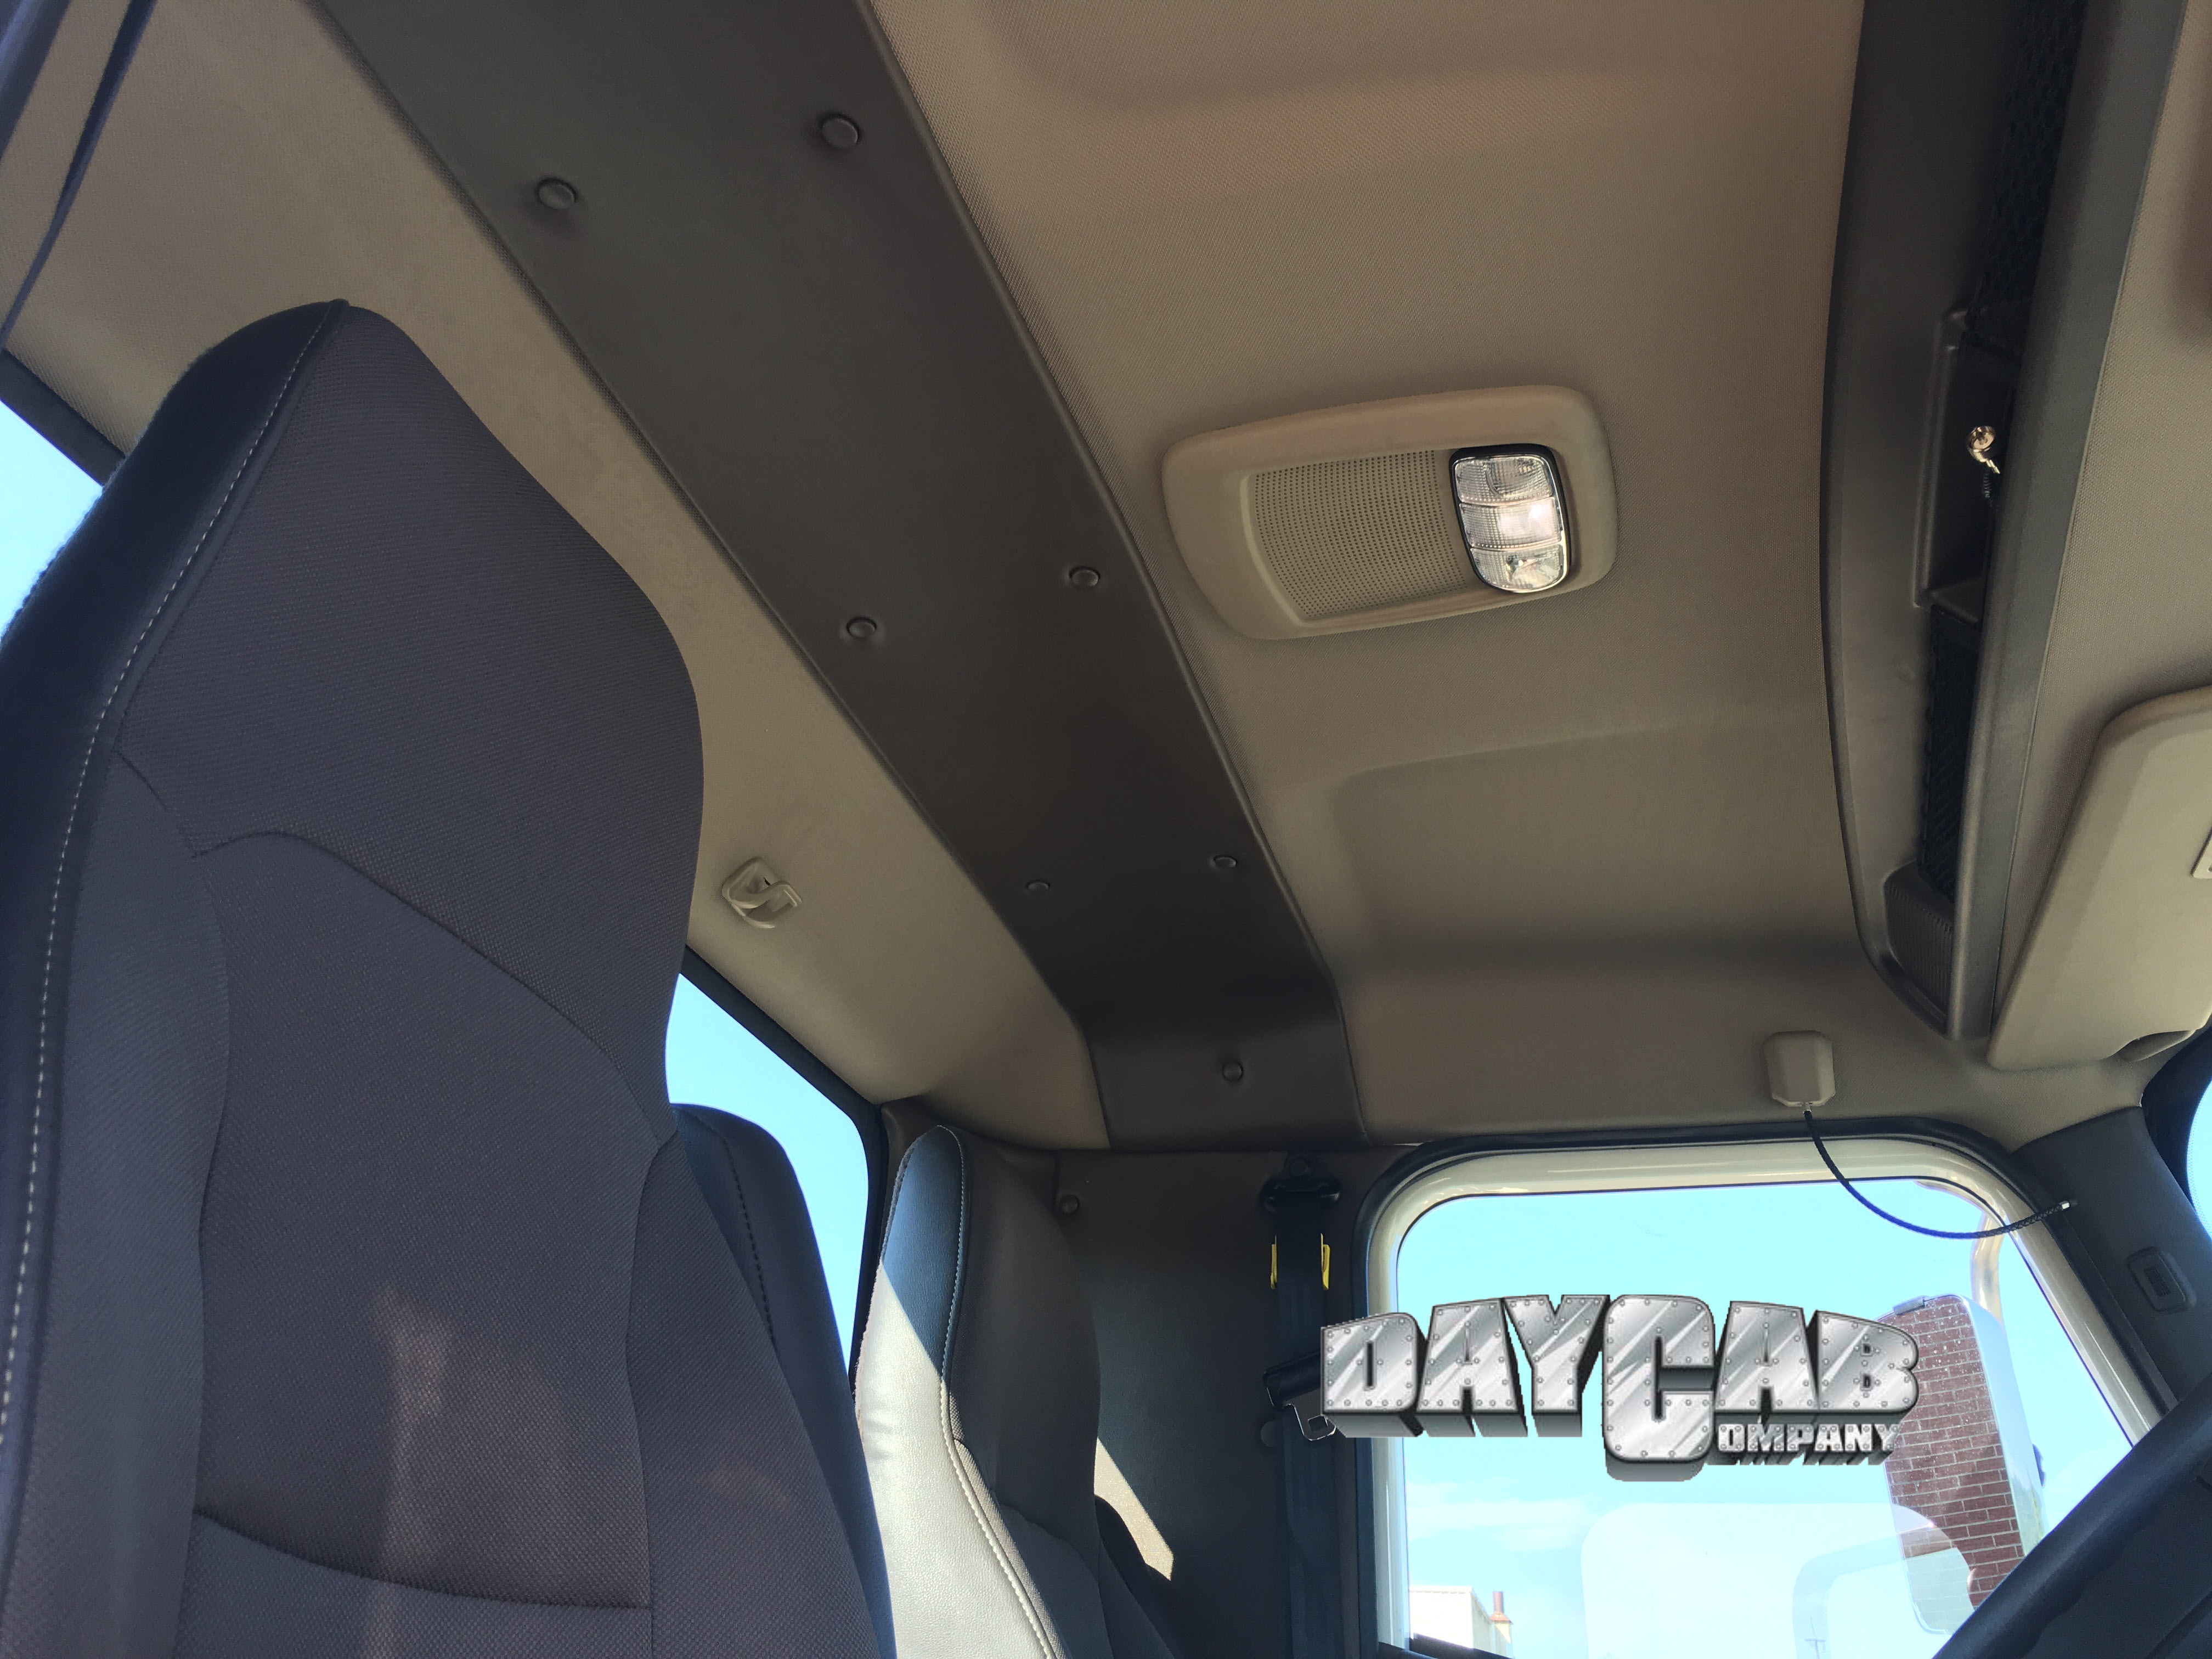 Daycab Company - International HX Extended Day Cab Interior Headliner